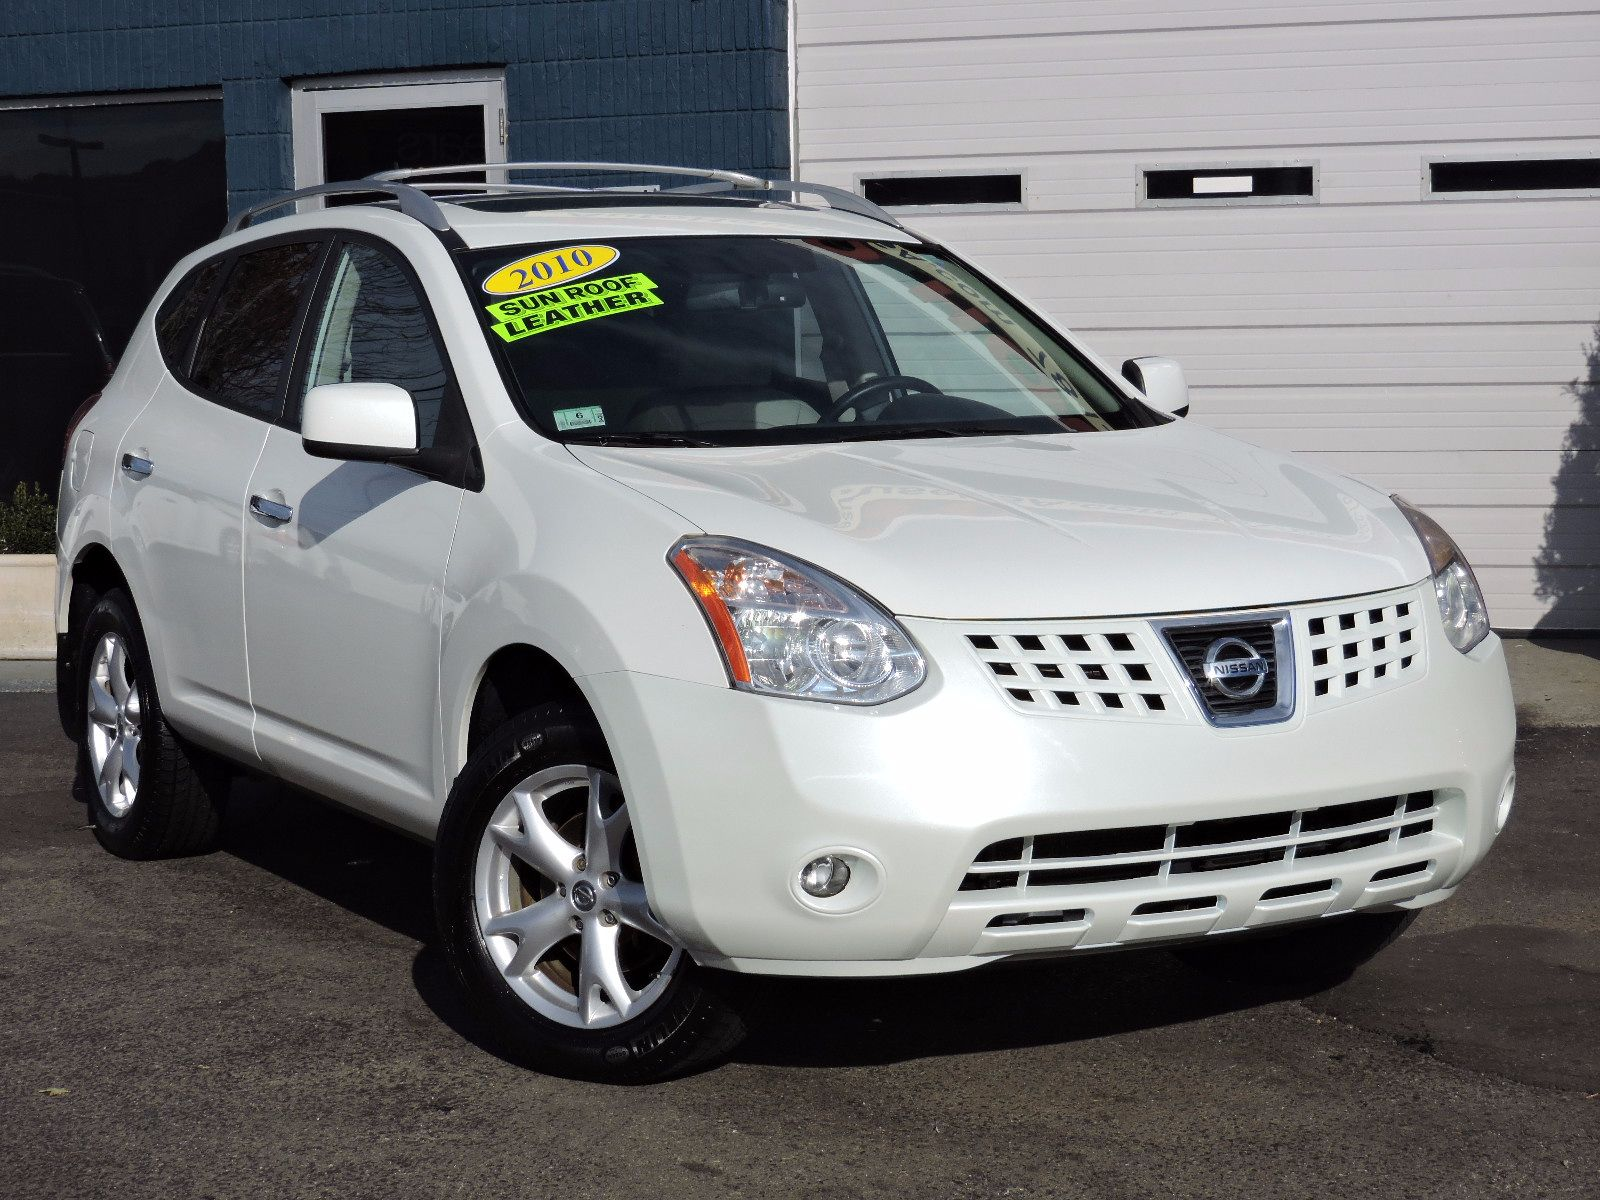 2010 Nissan Rogue - All Wheel Drive